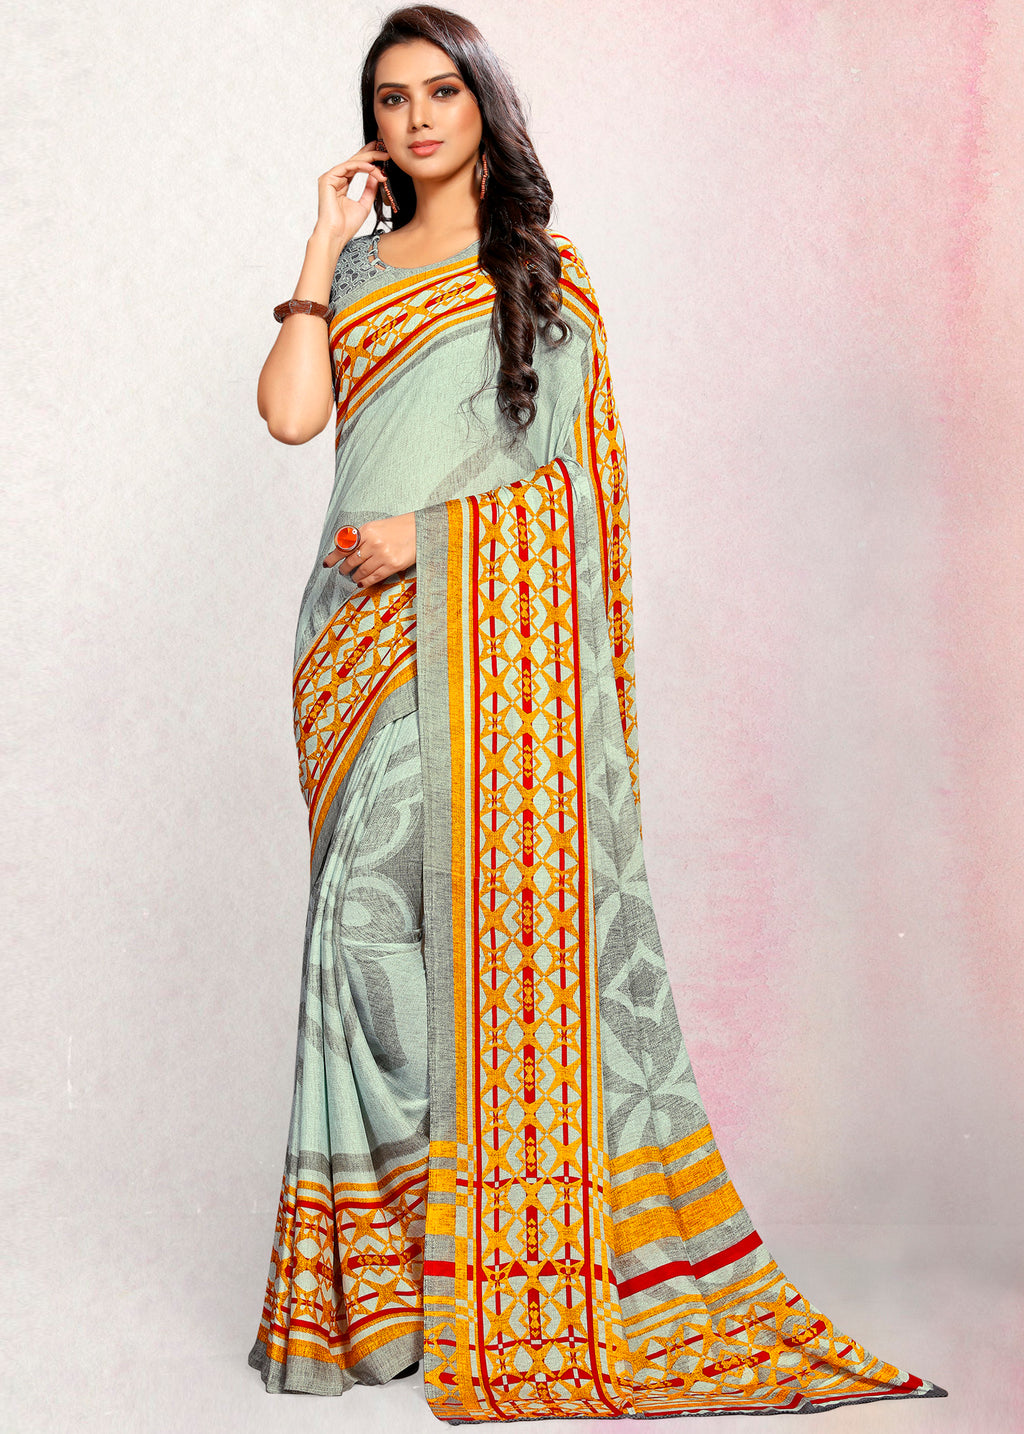 Grey Color Crepe Printed Kitty Party Sarees NYF-9494